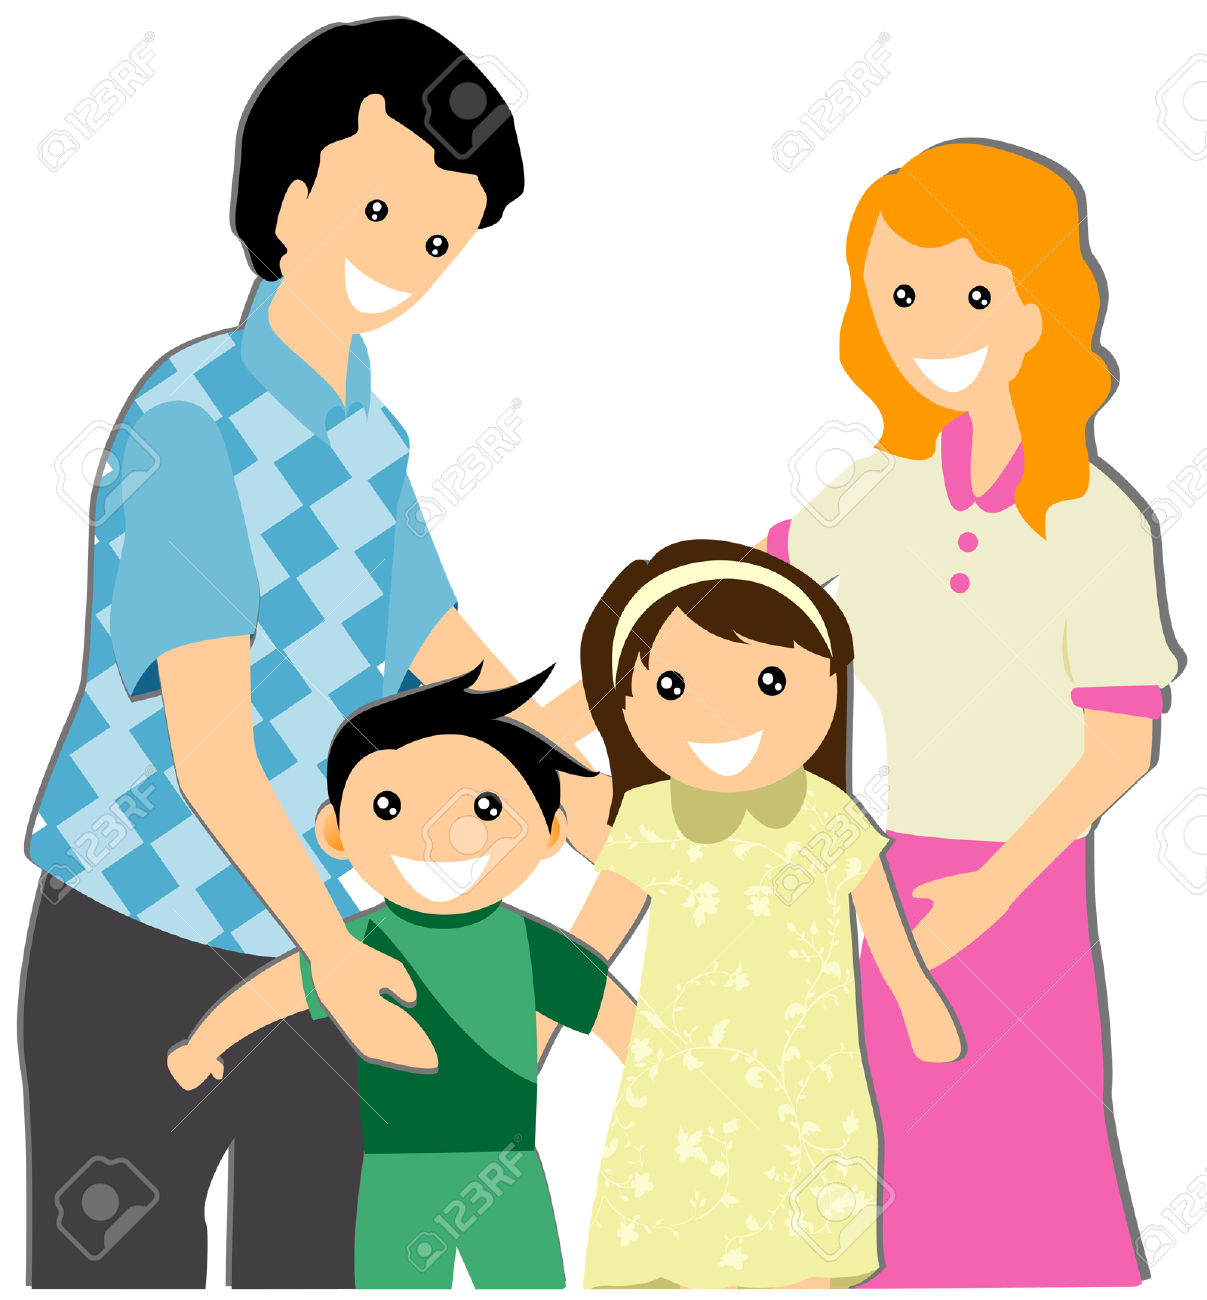 1207x1300 My Family Illustration Free Cliparts Vectors And Stock